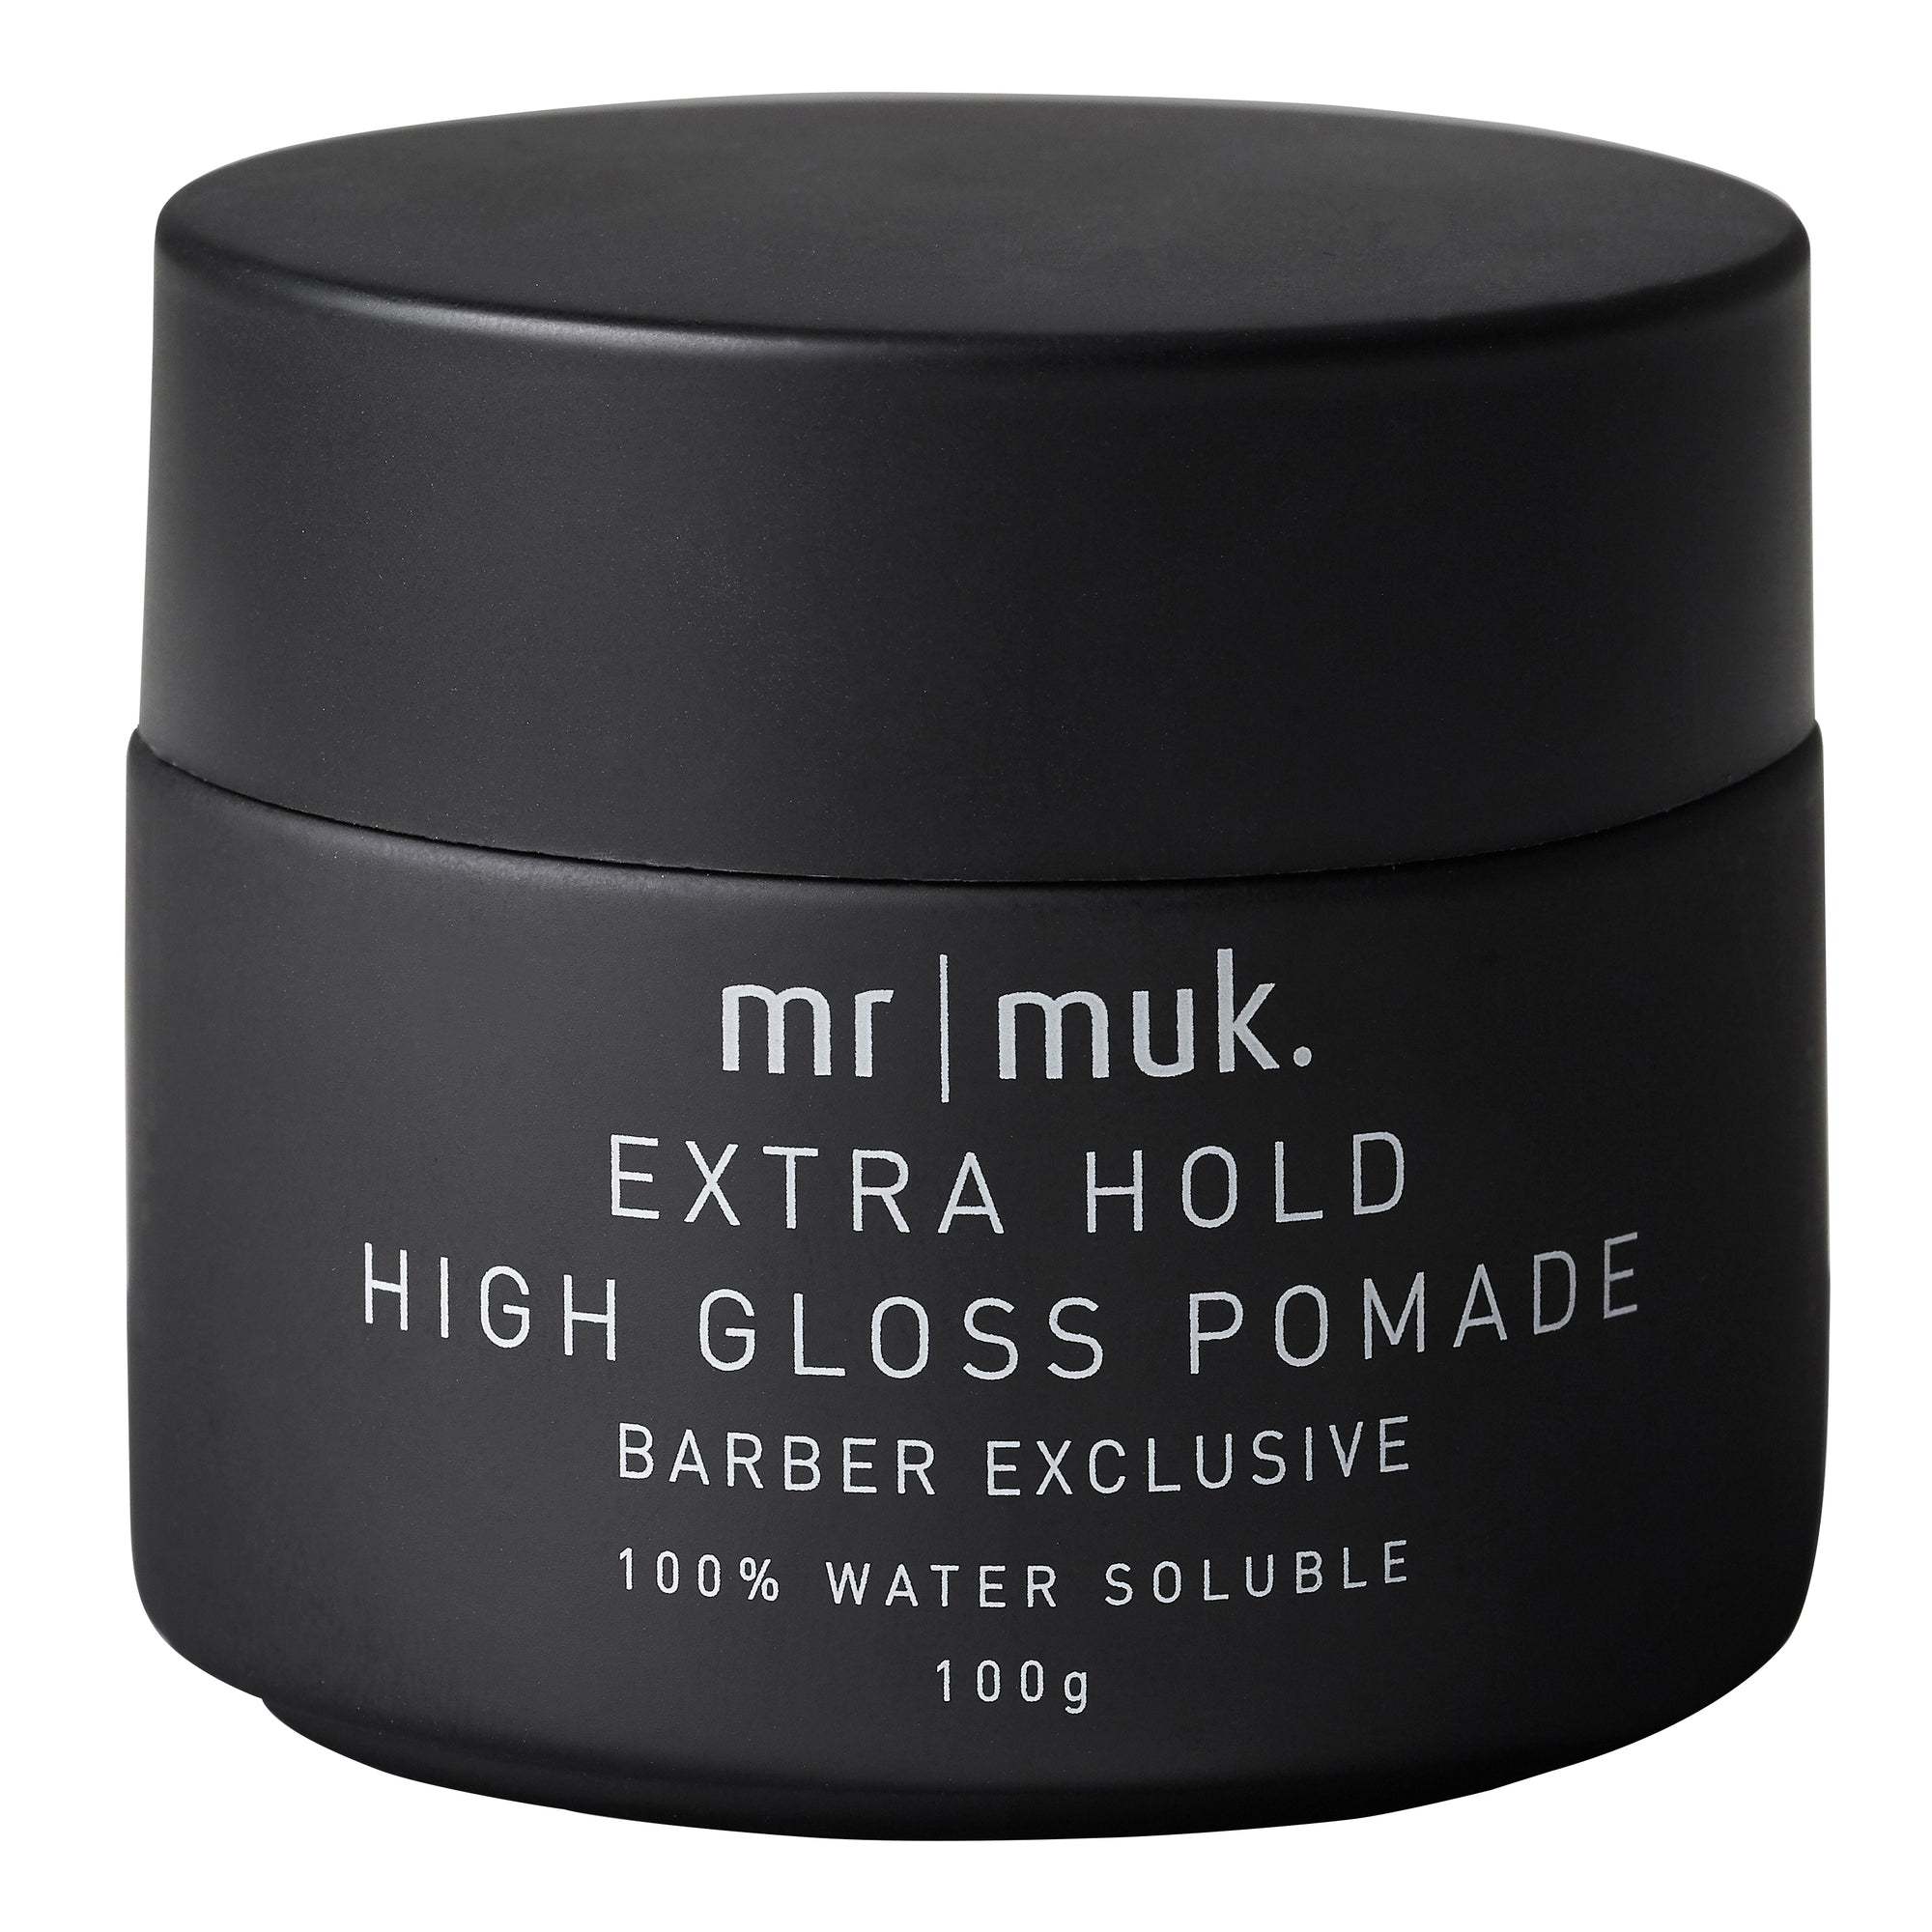 EXTRA HOLD HIGH GLOSS POMADE